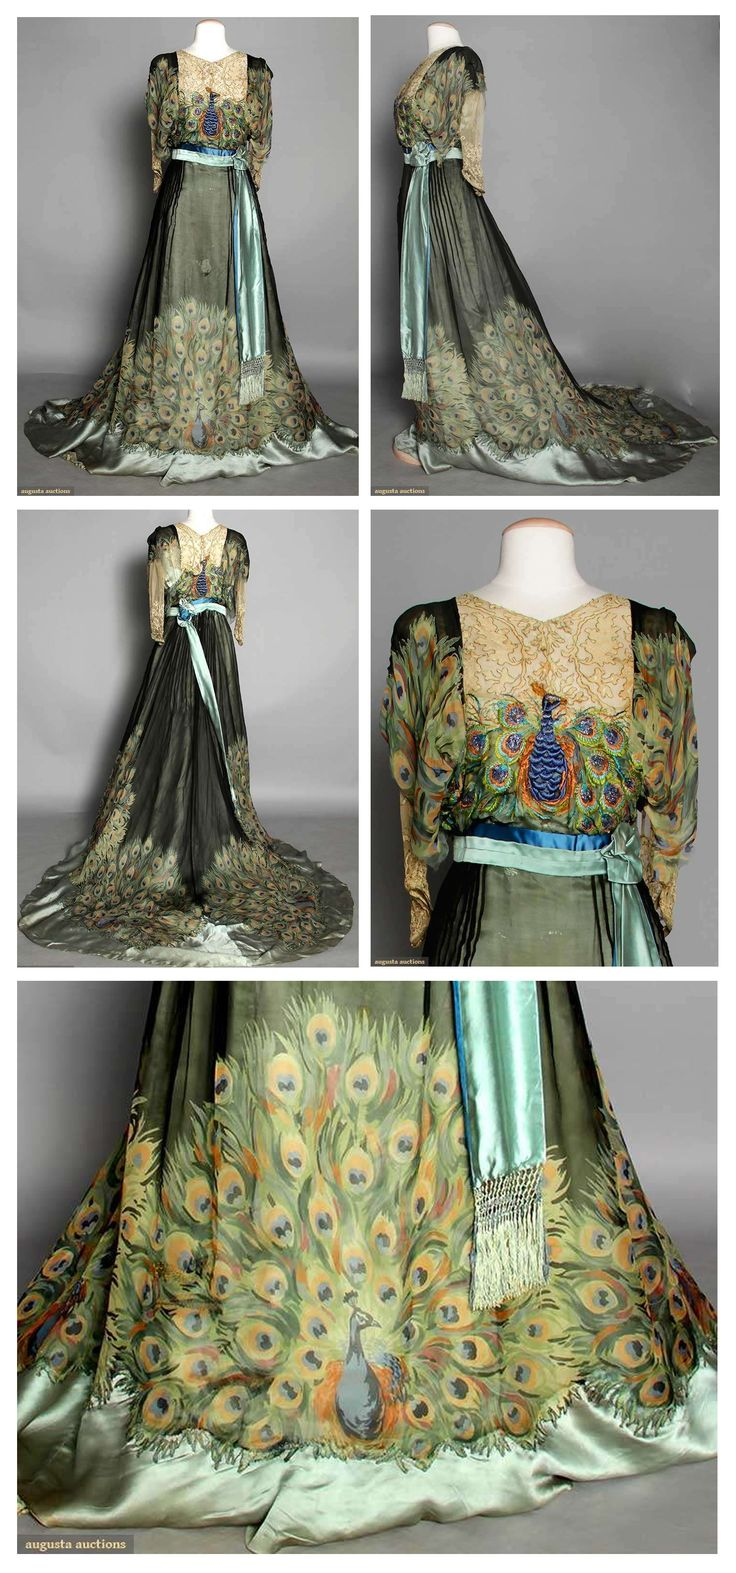 PEACOCK PRINT EVENING GOWN, c. 1910  Peacock tail printed silk chiffon w/ embroidered & beaded peacock on bodice.